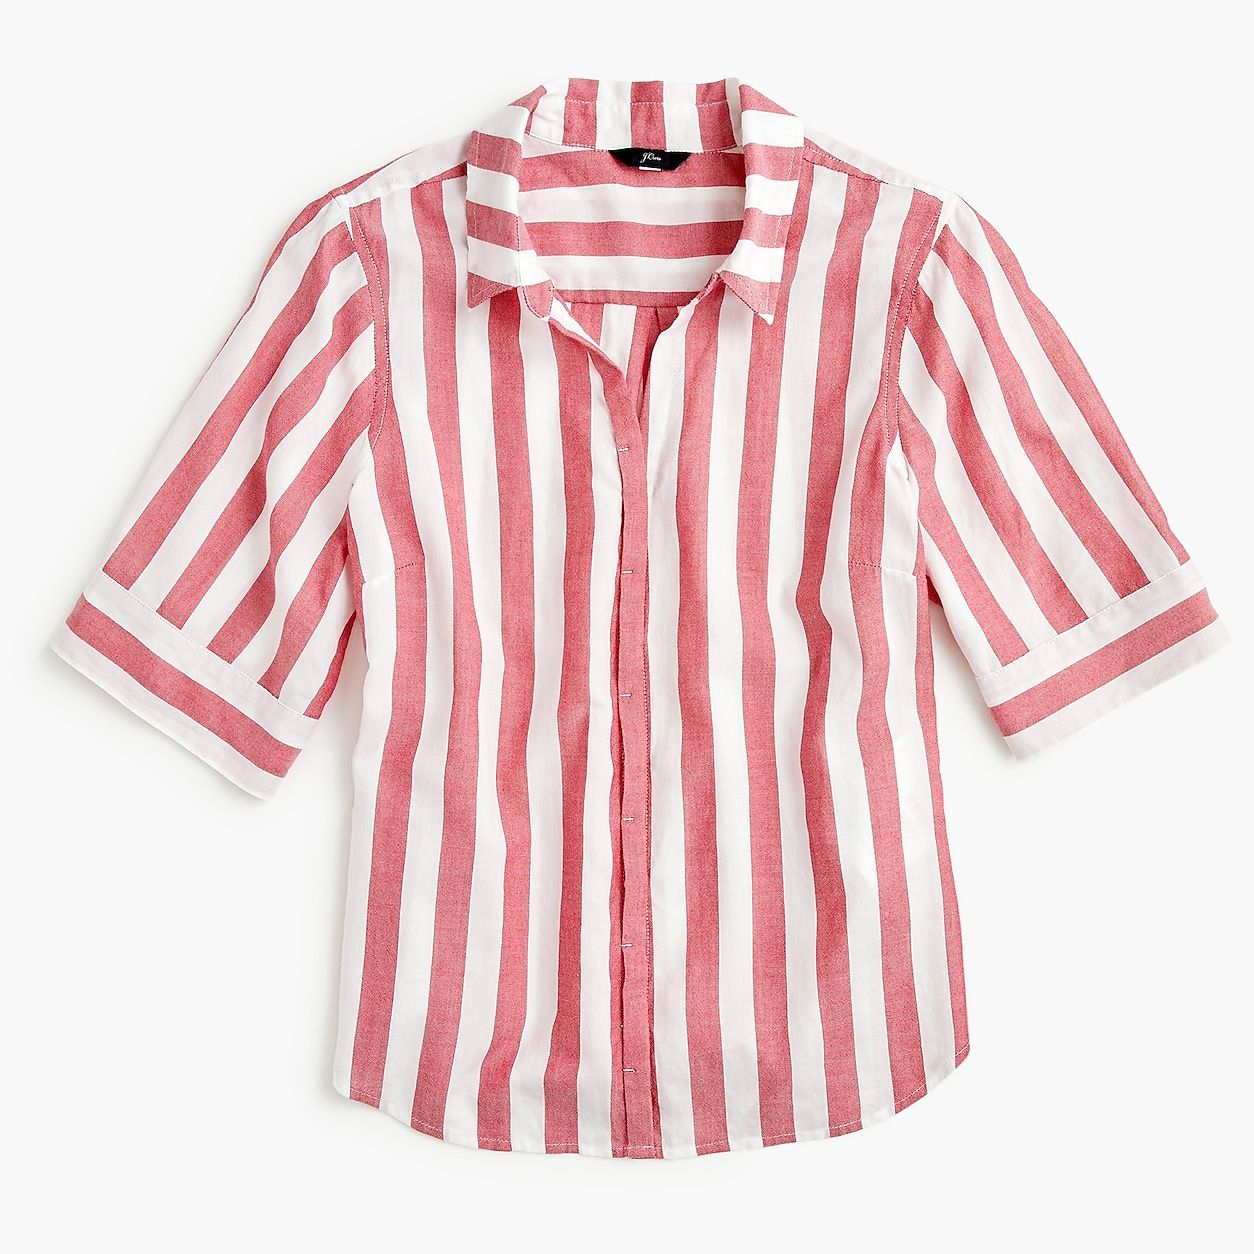 ec17bbdf8 Petite Short-Sleeve Button-Up Shirt In Wide Stripe | Products ...